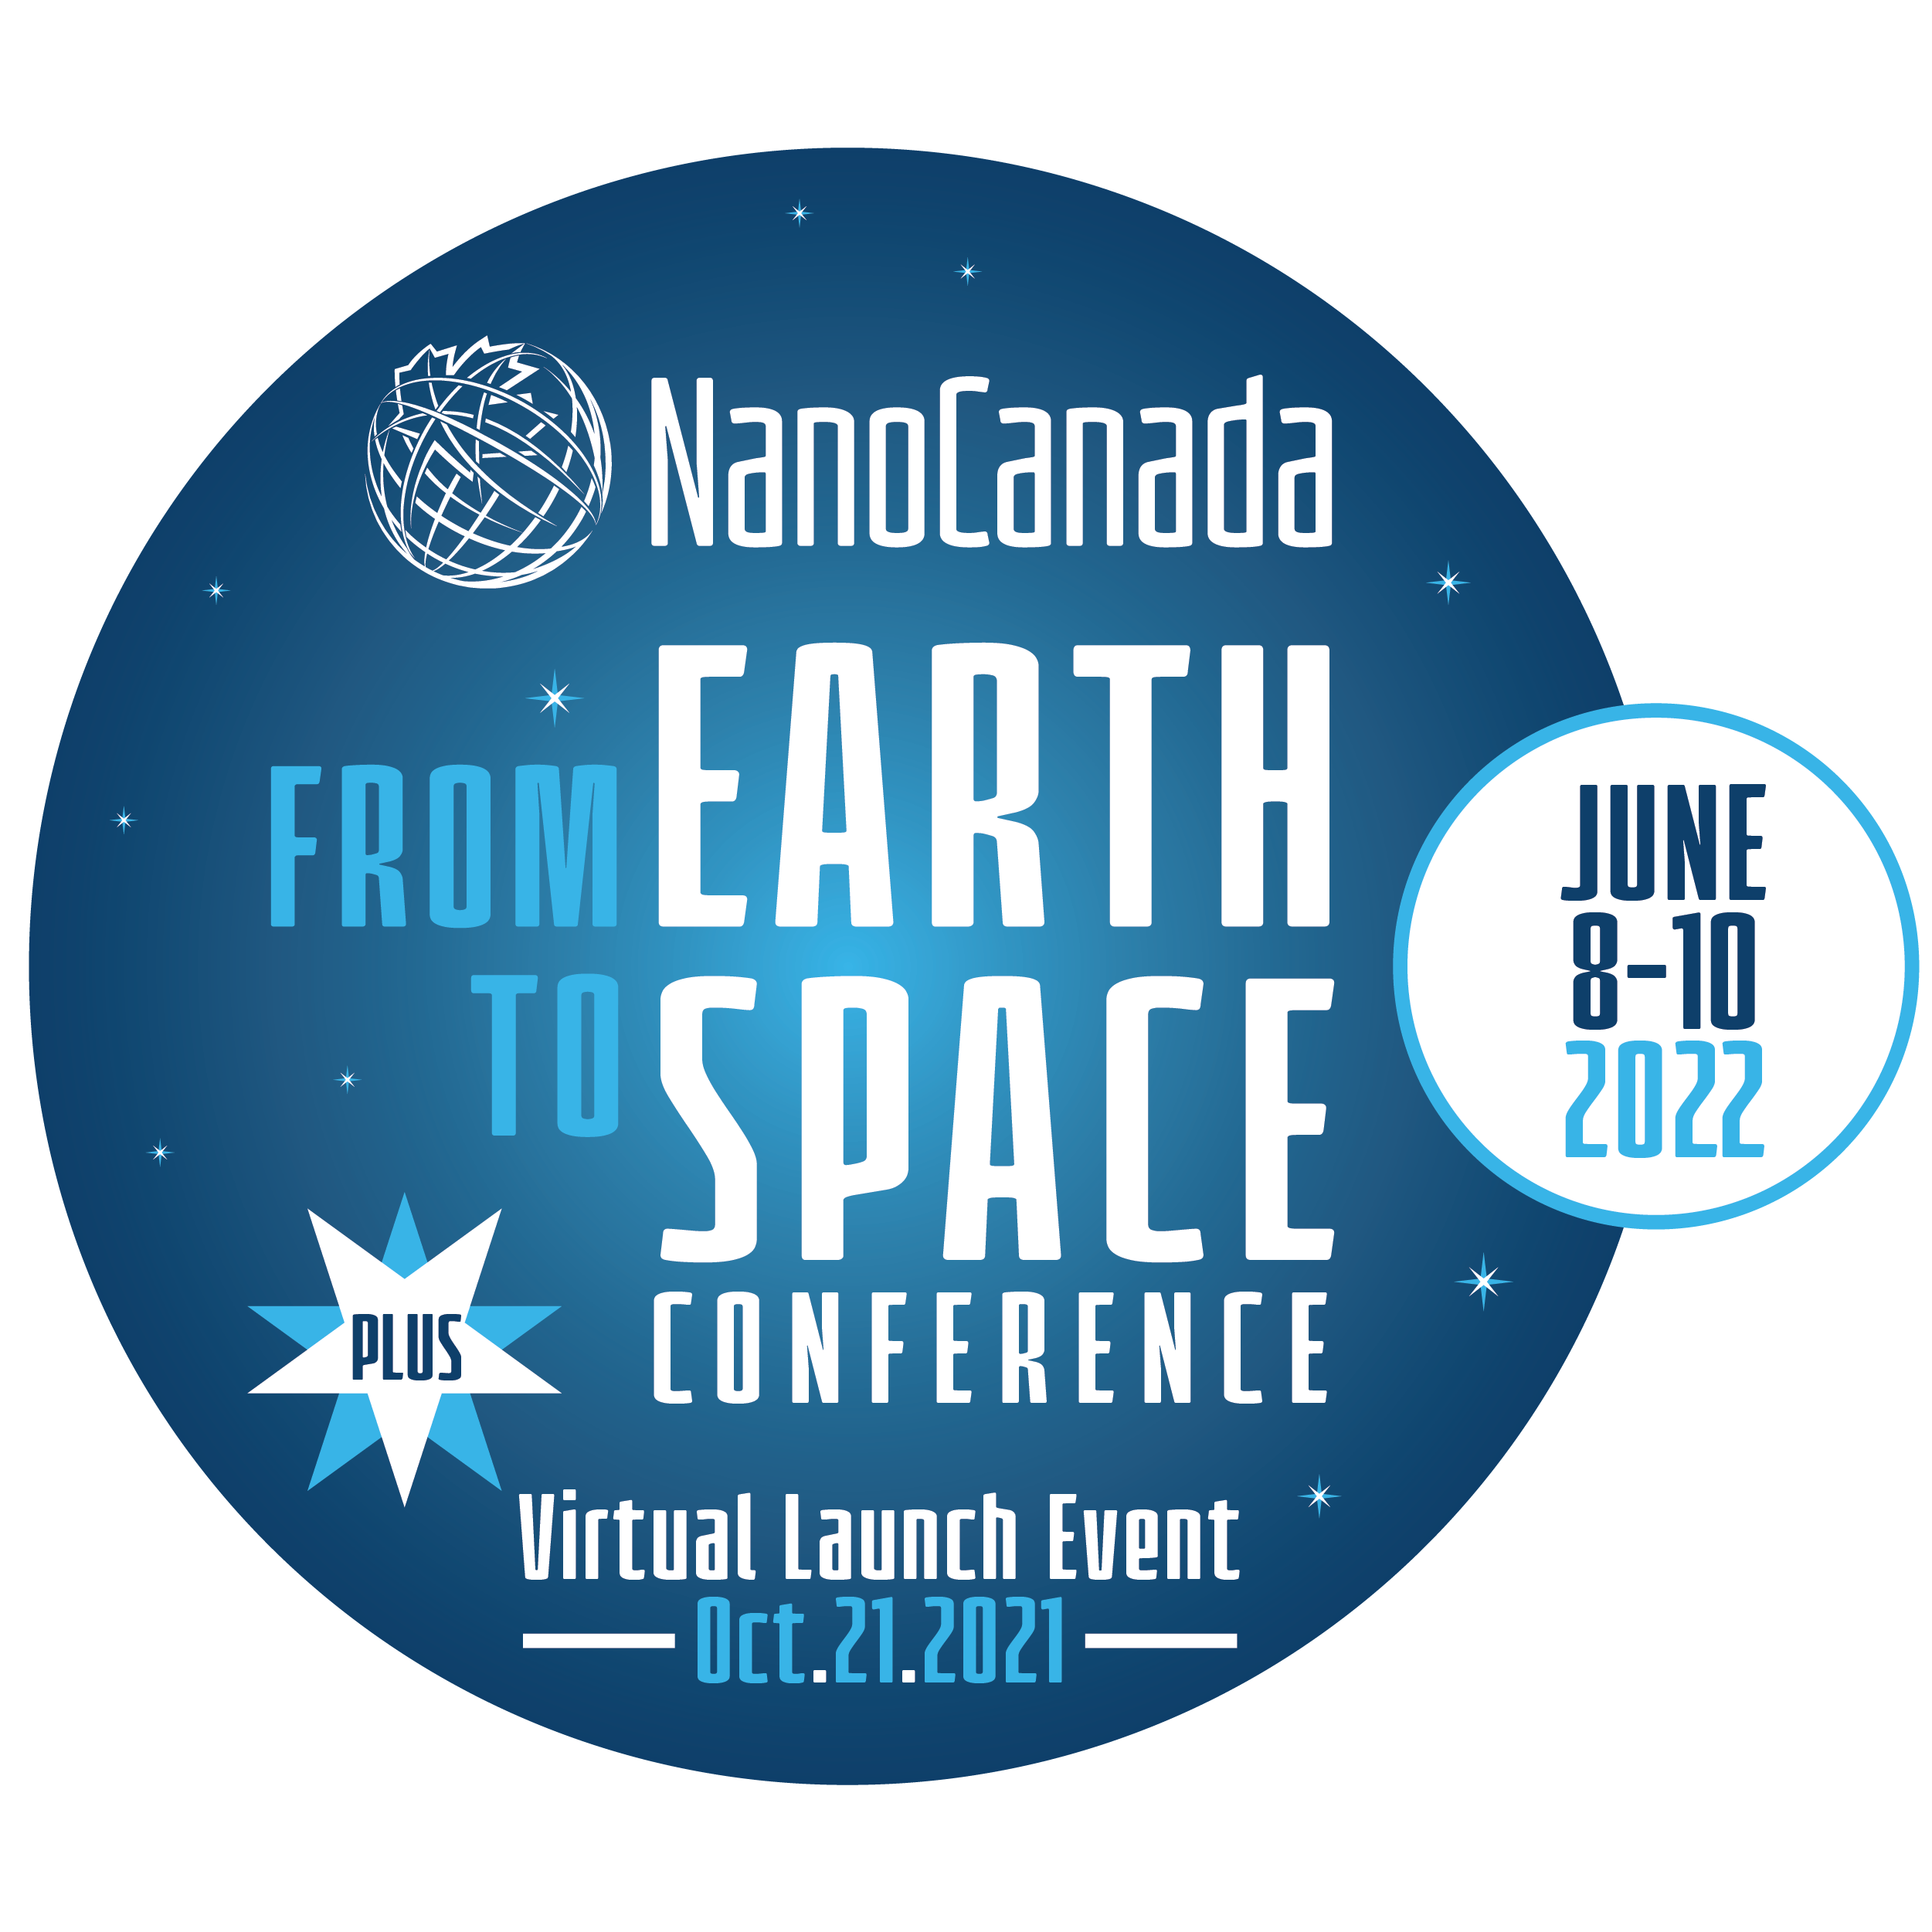 NanoCanada From Earth to Space conference logo